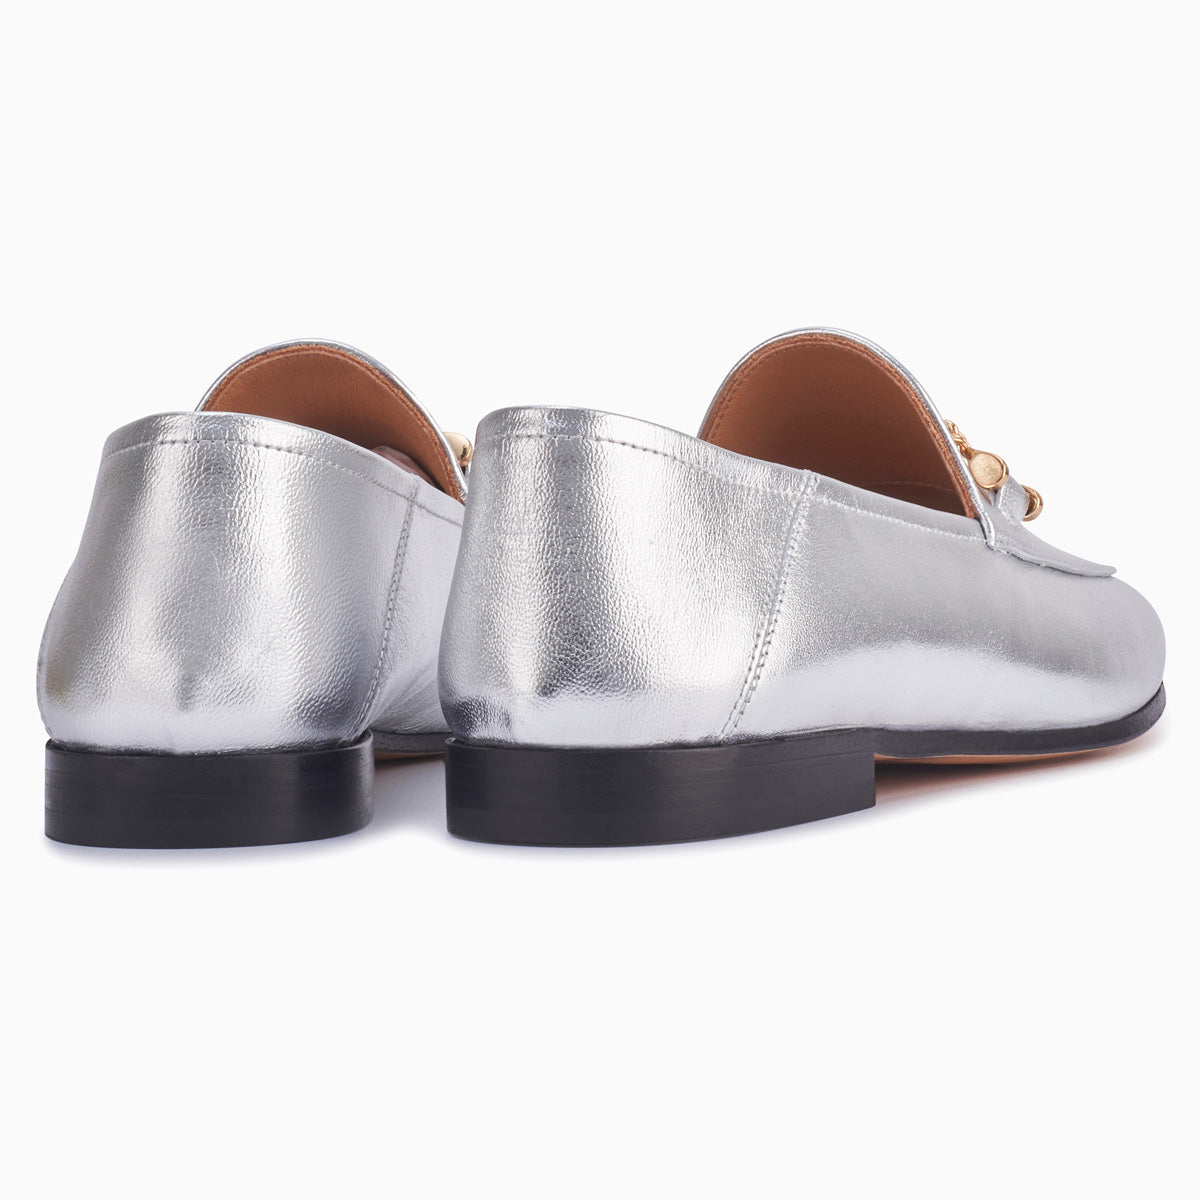 Hyusto Debbie Loafer Silver Glove back view